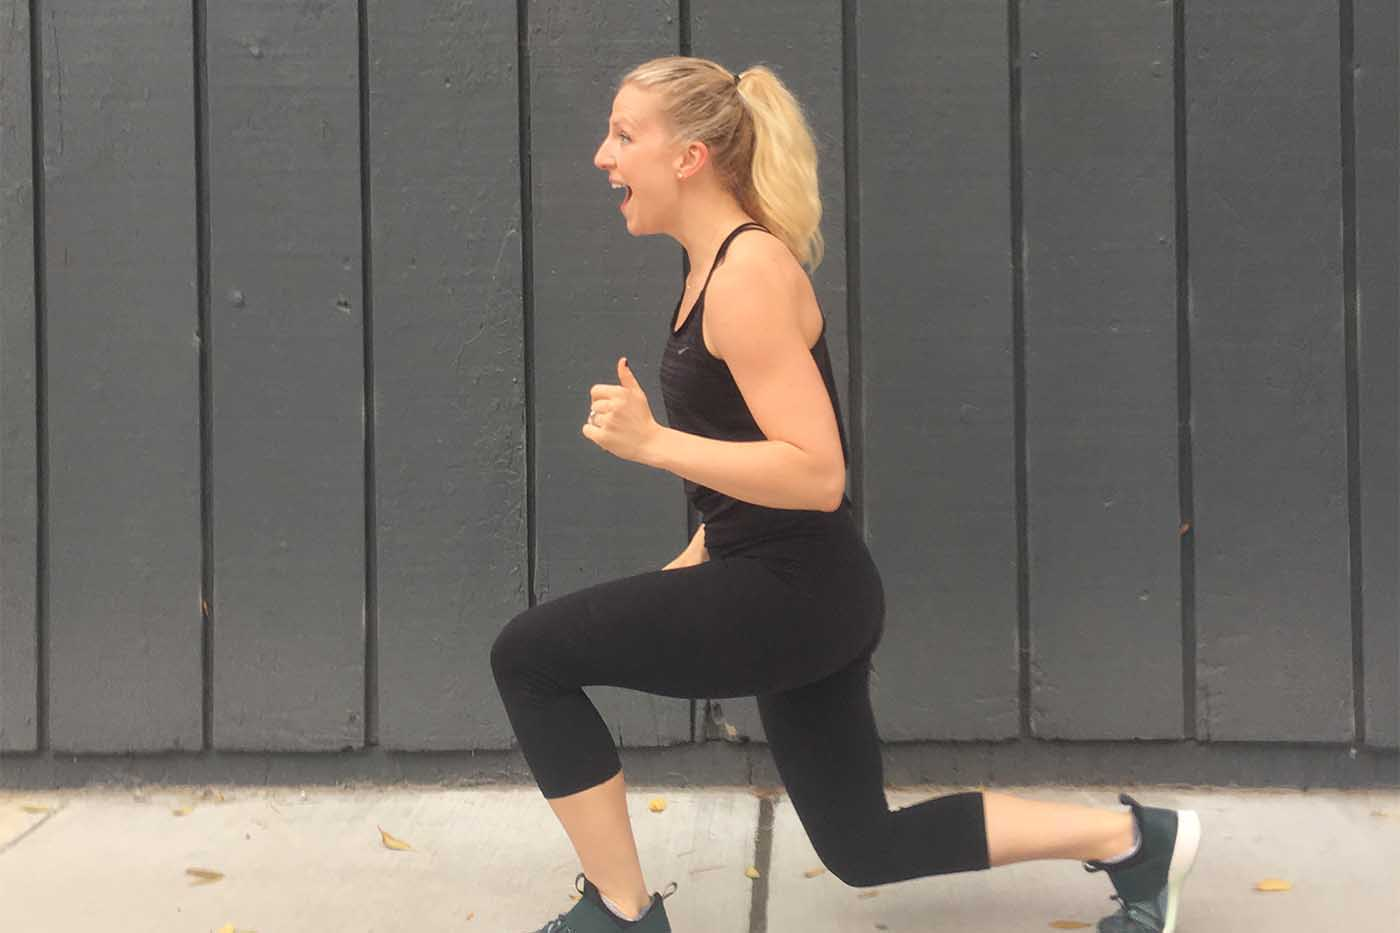 asweatlife_a-30-minute-workout-to-do-alone-or-with-a-friend_lunge-jump_featured